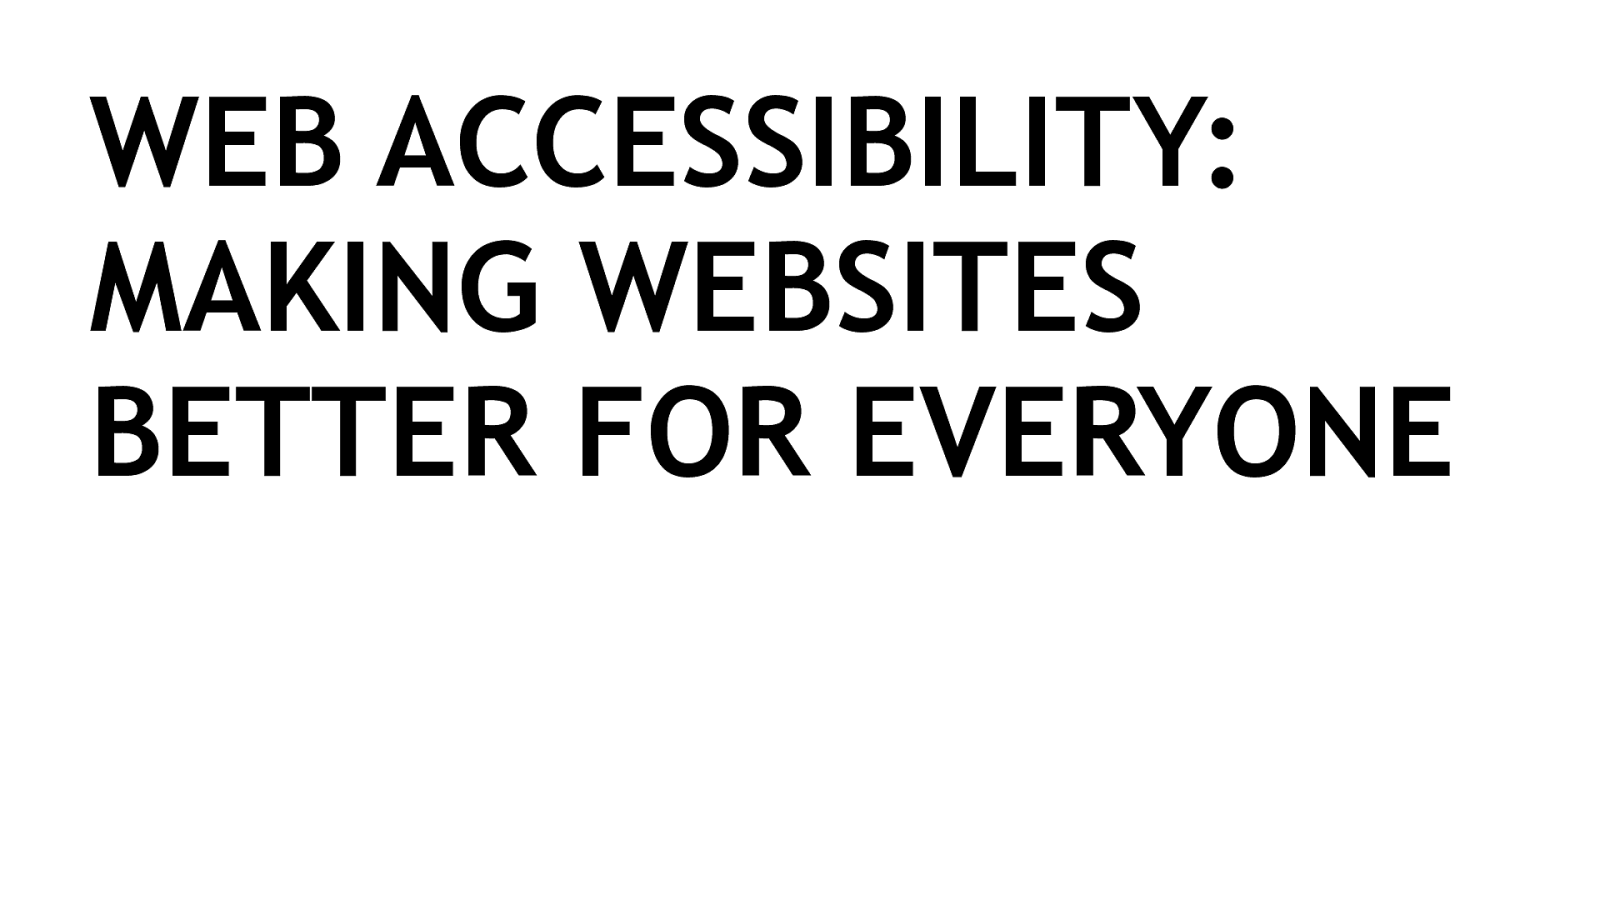 Web Accessibility: Making Websites Better For Everyone